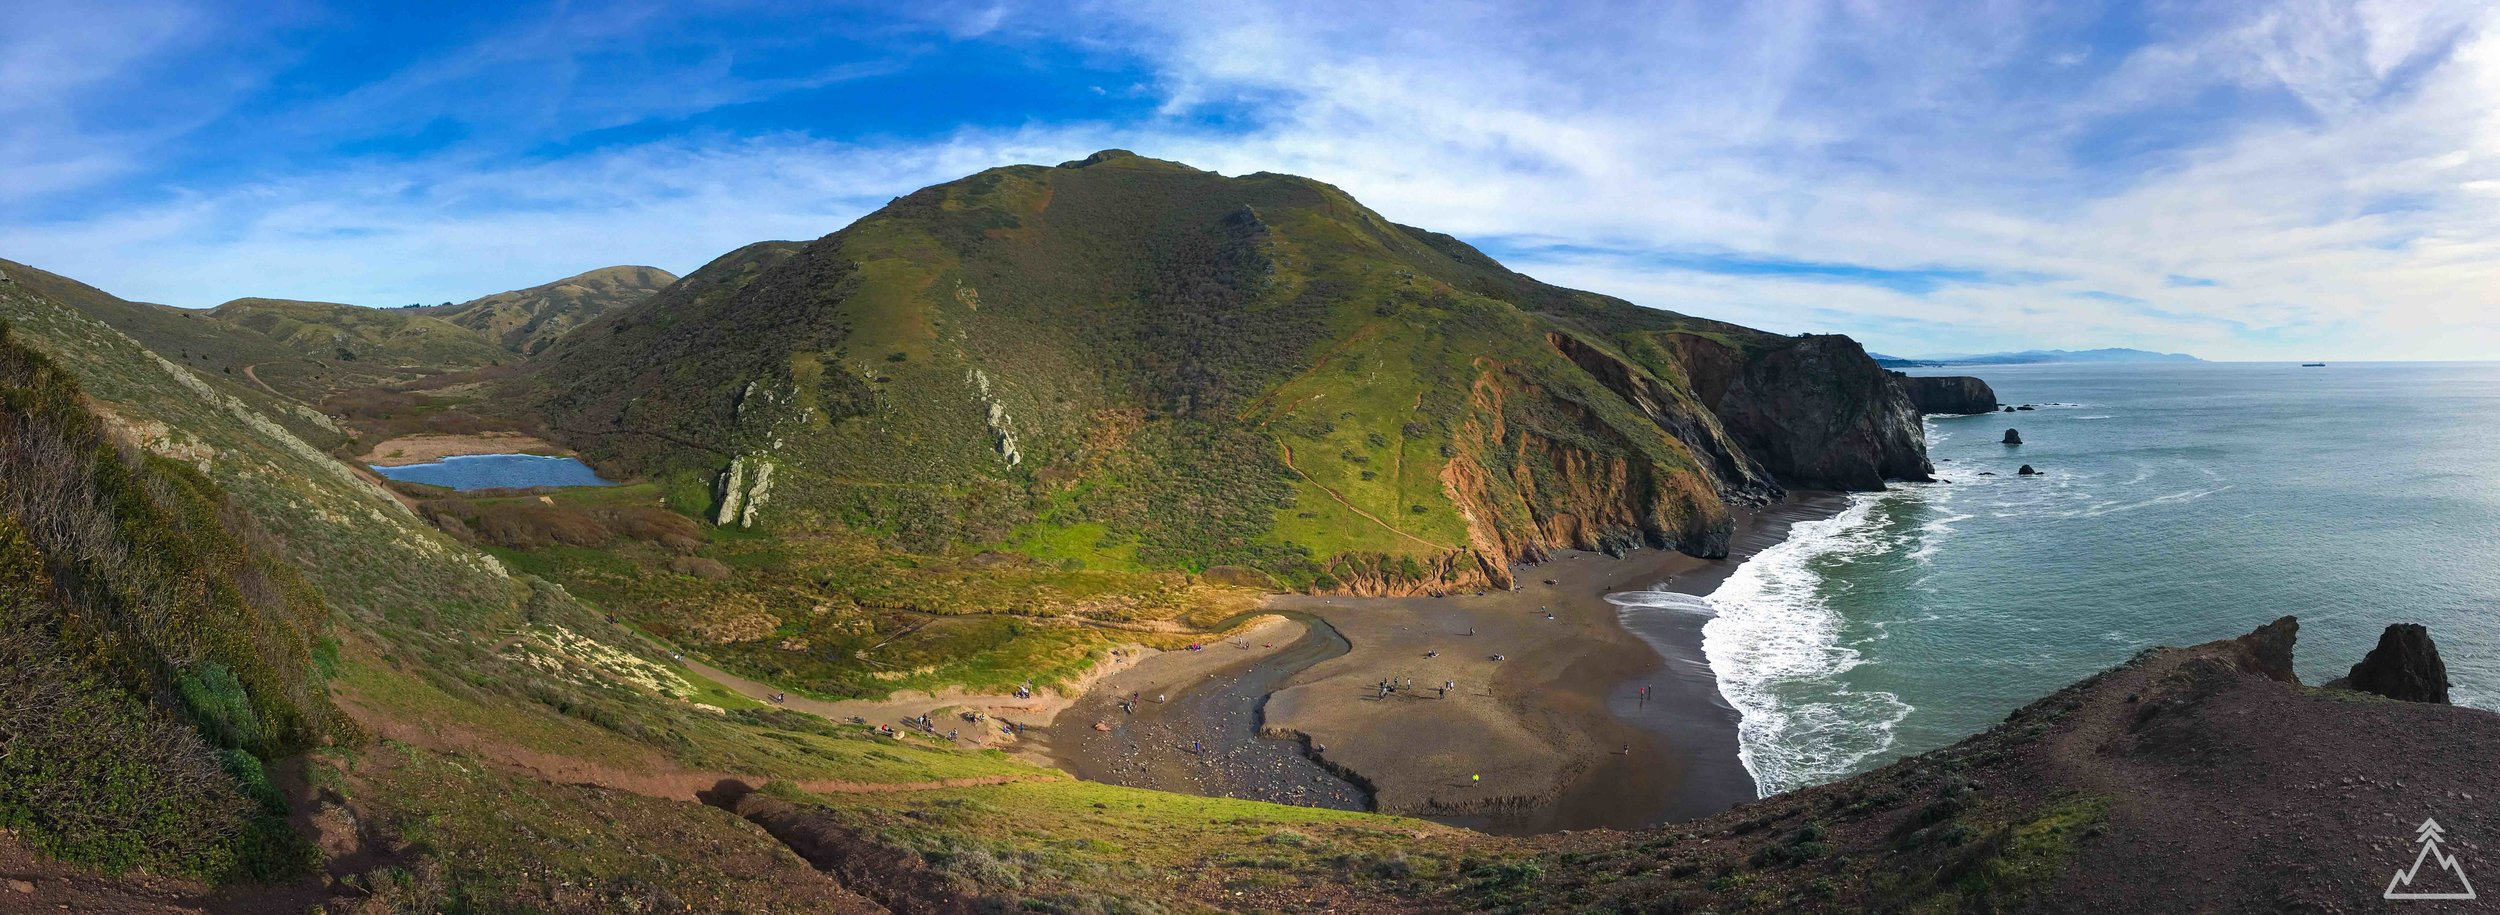 Tennessee Valley overlook